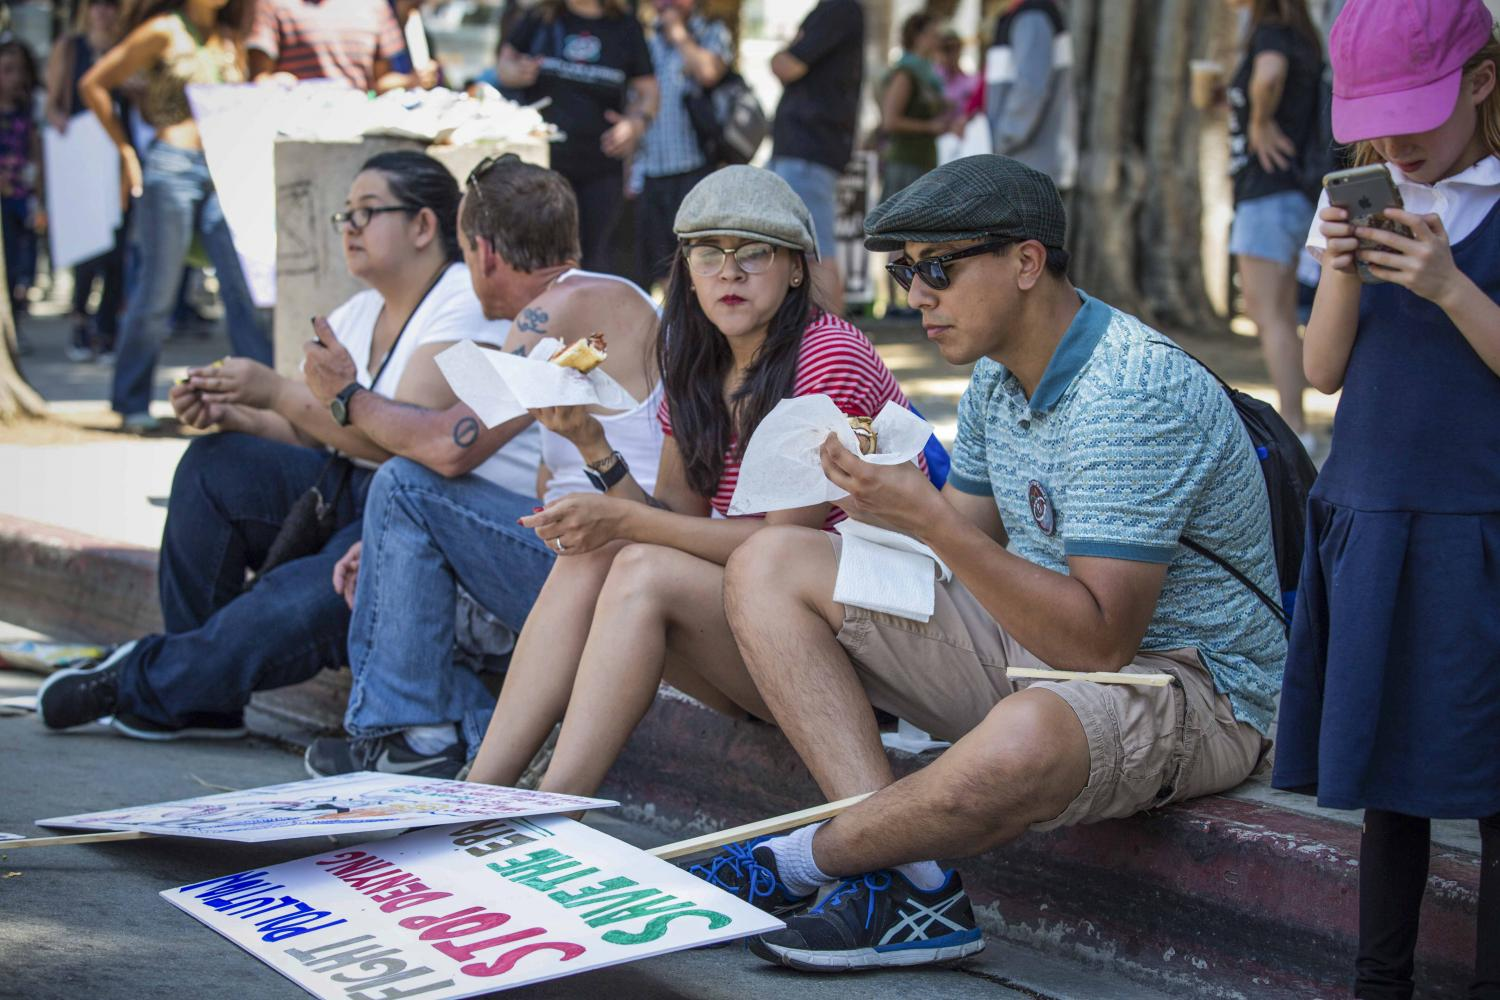 March for Science protesters take a break from the heat and eat in the shade after the majority of key speakers had wrapped up their speeches in front of Los Angles City Hall in downtown Los Angles California, on Saturday, April 22 2017. Matthew Martin.